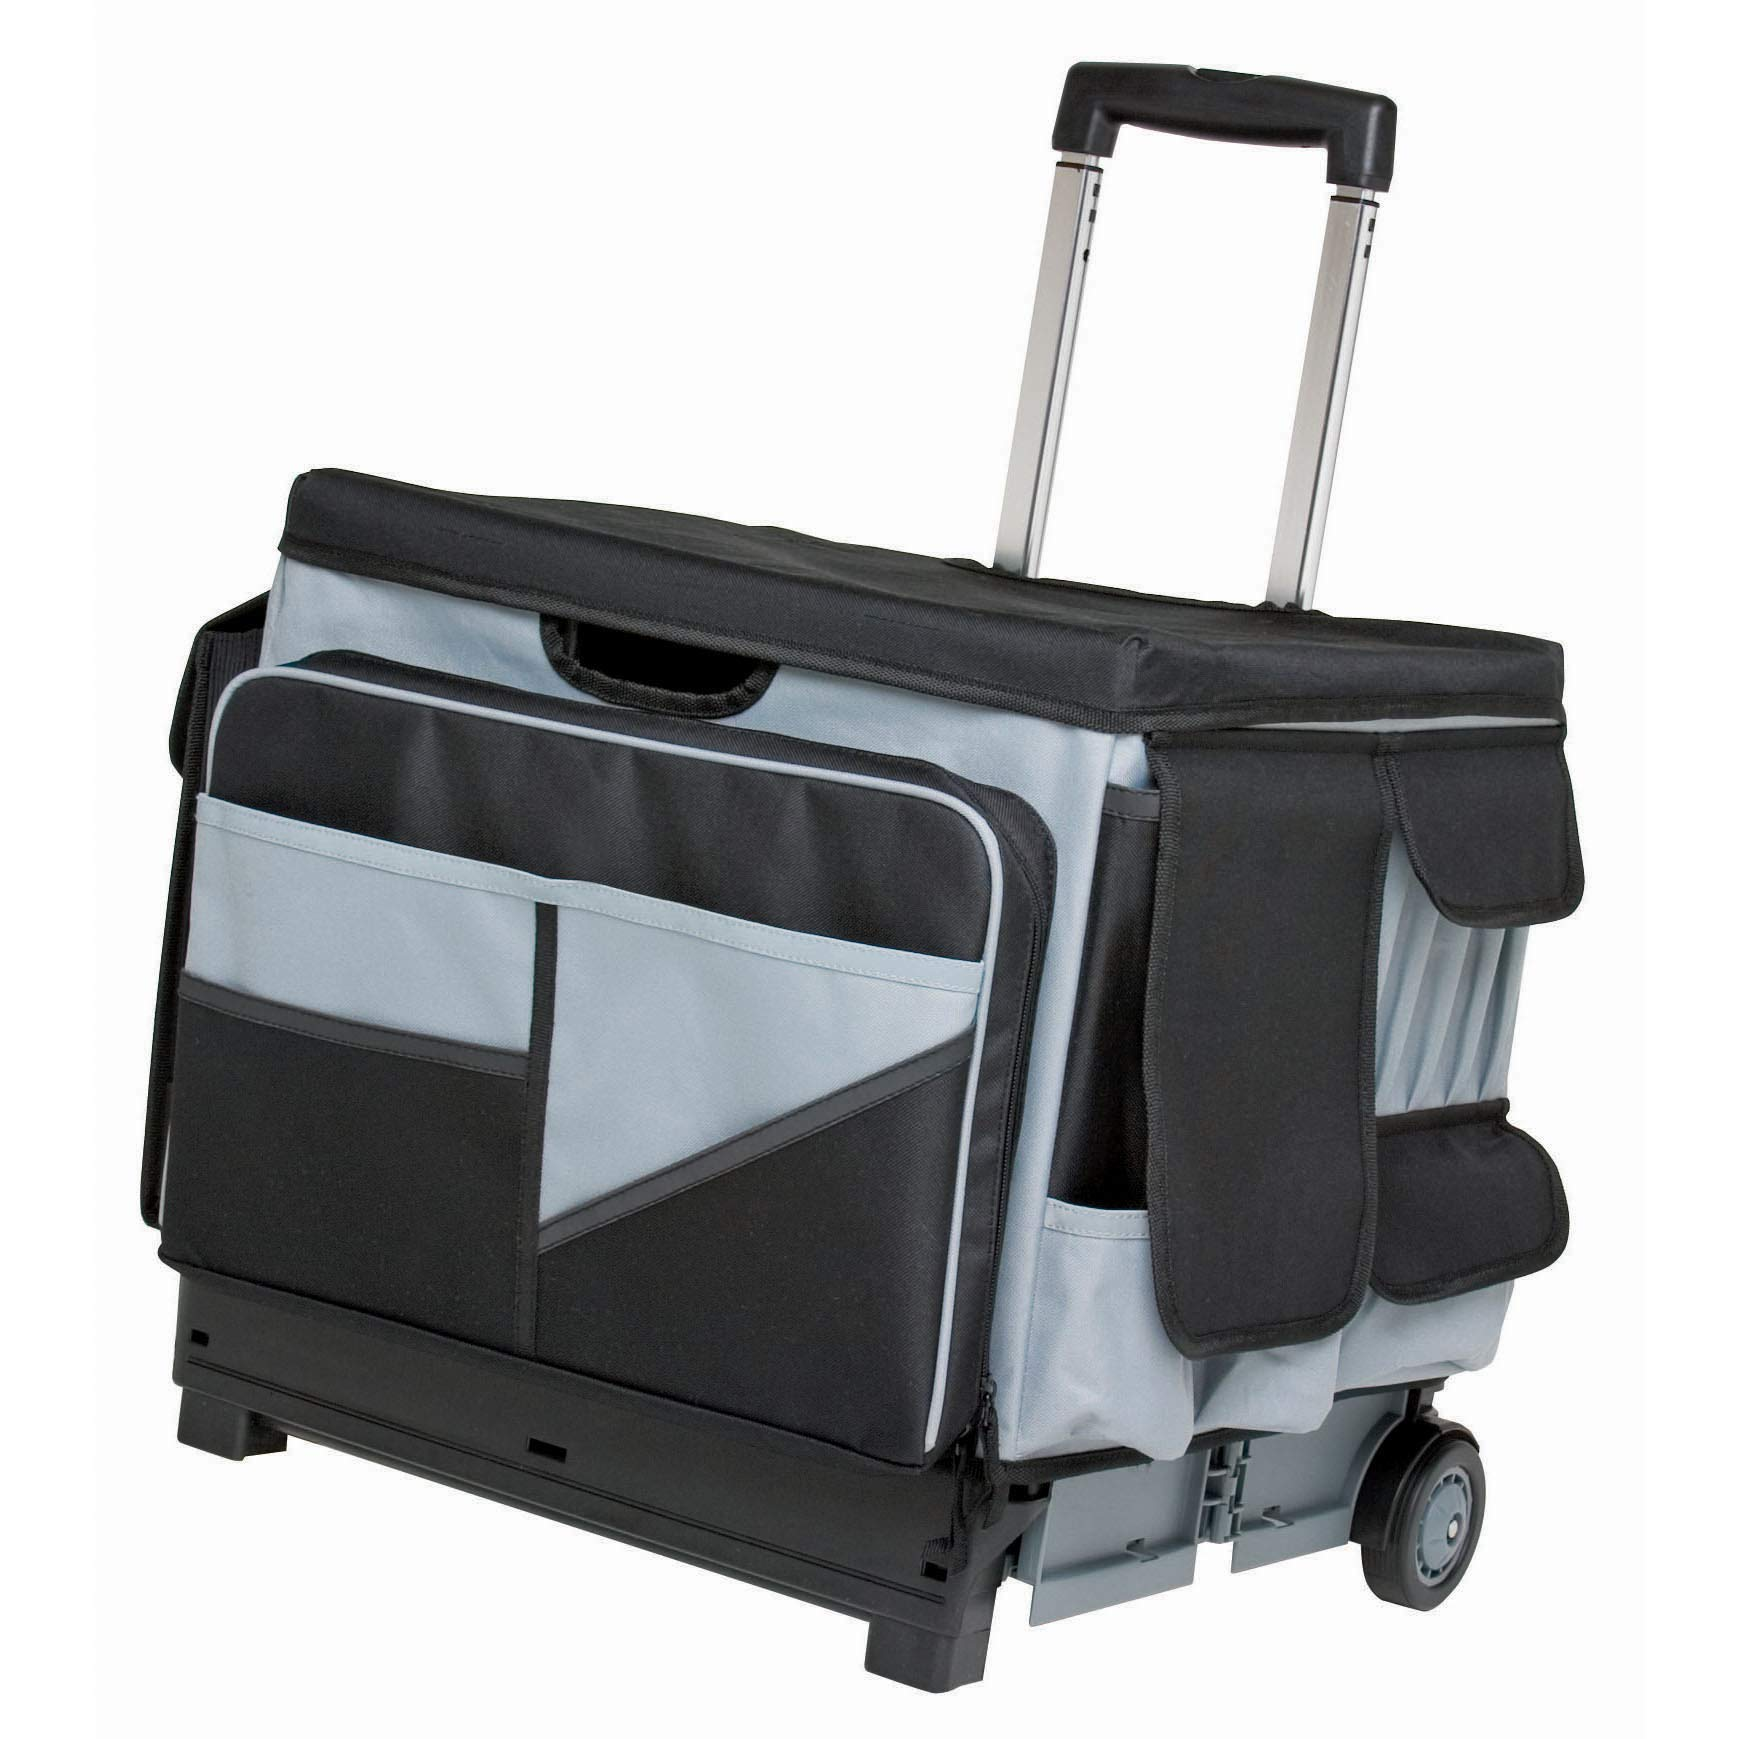 ECR4Kids MemoryStor Universal Rolling Cart and Organizer Bag Set, Moving Cart, Teacher Cart, Rolling Cart with Handle, Folds Flat to 3 inches, 30 Compartments & Pockets, Holds 65 lbs by ECR4Kids